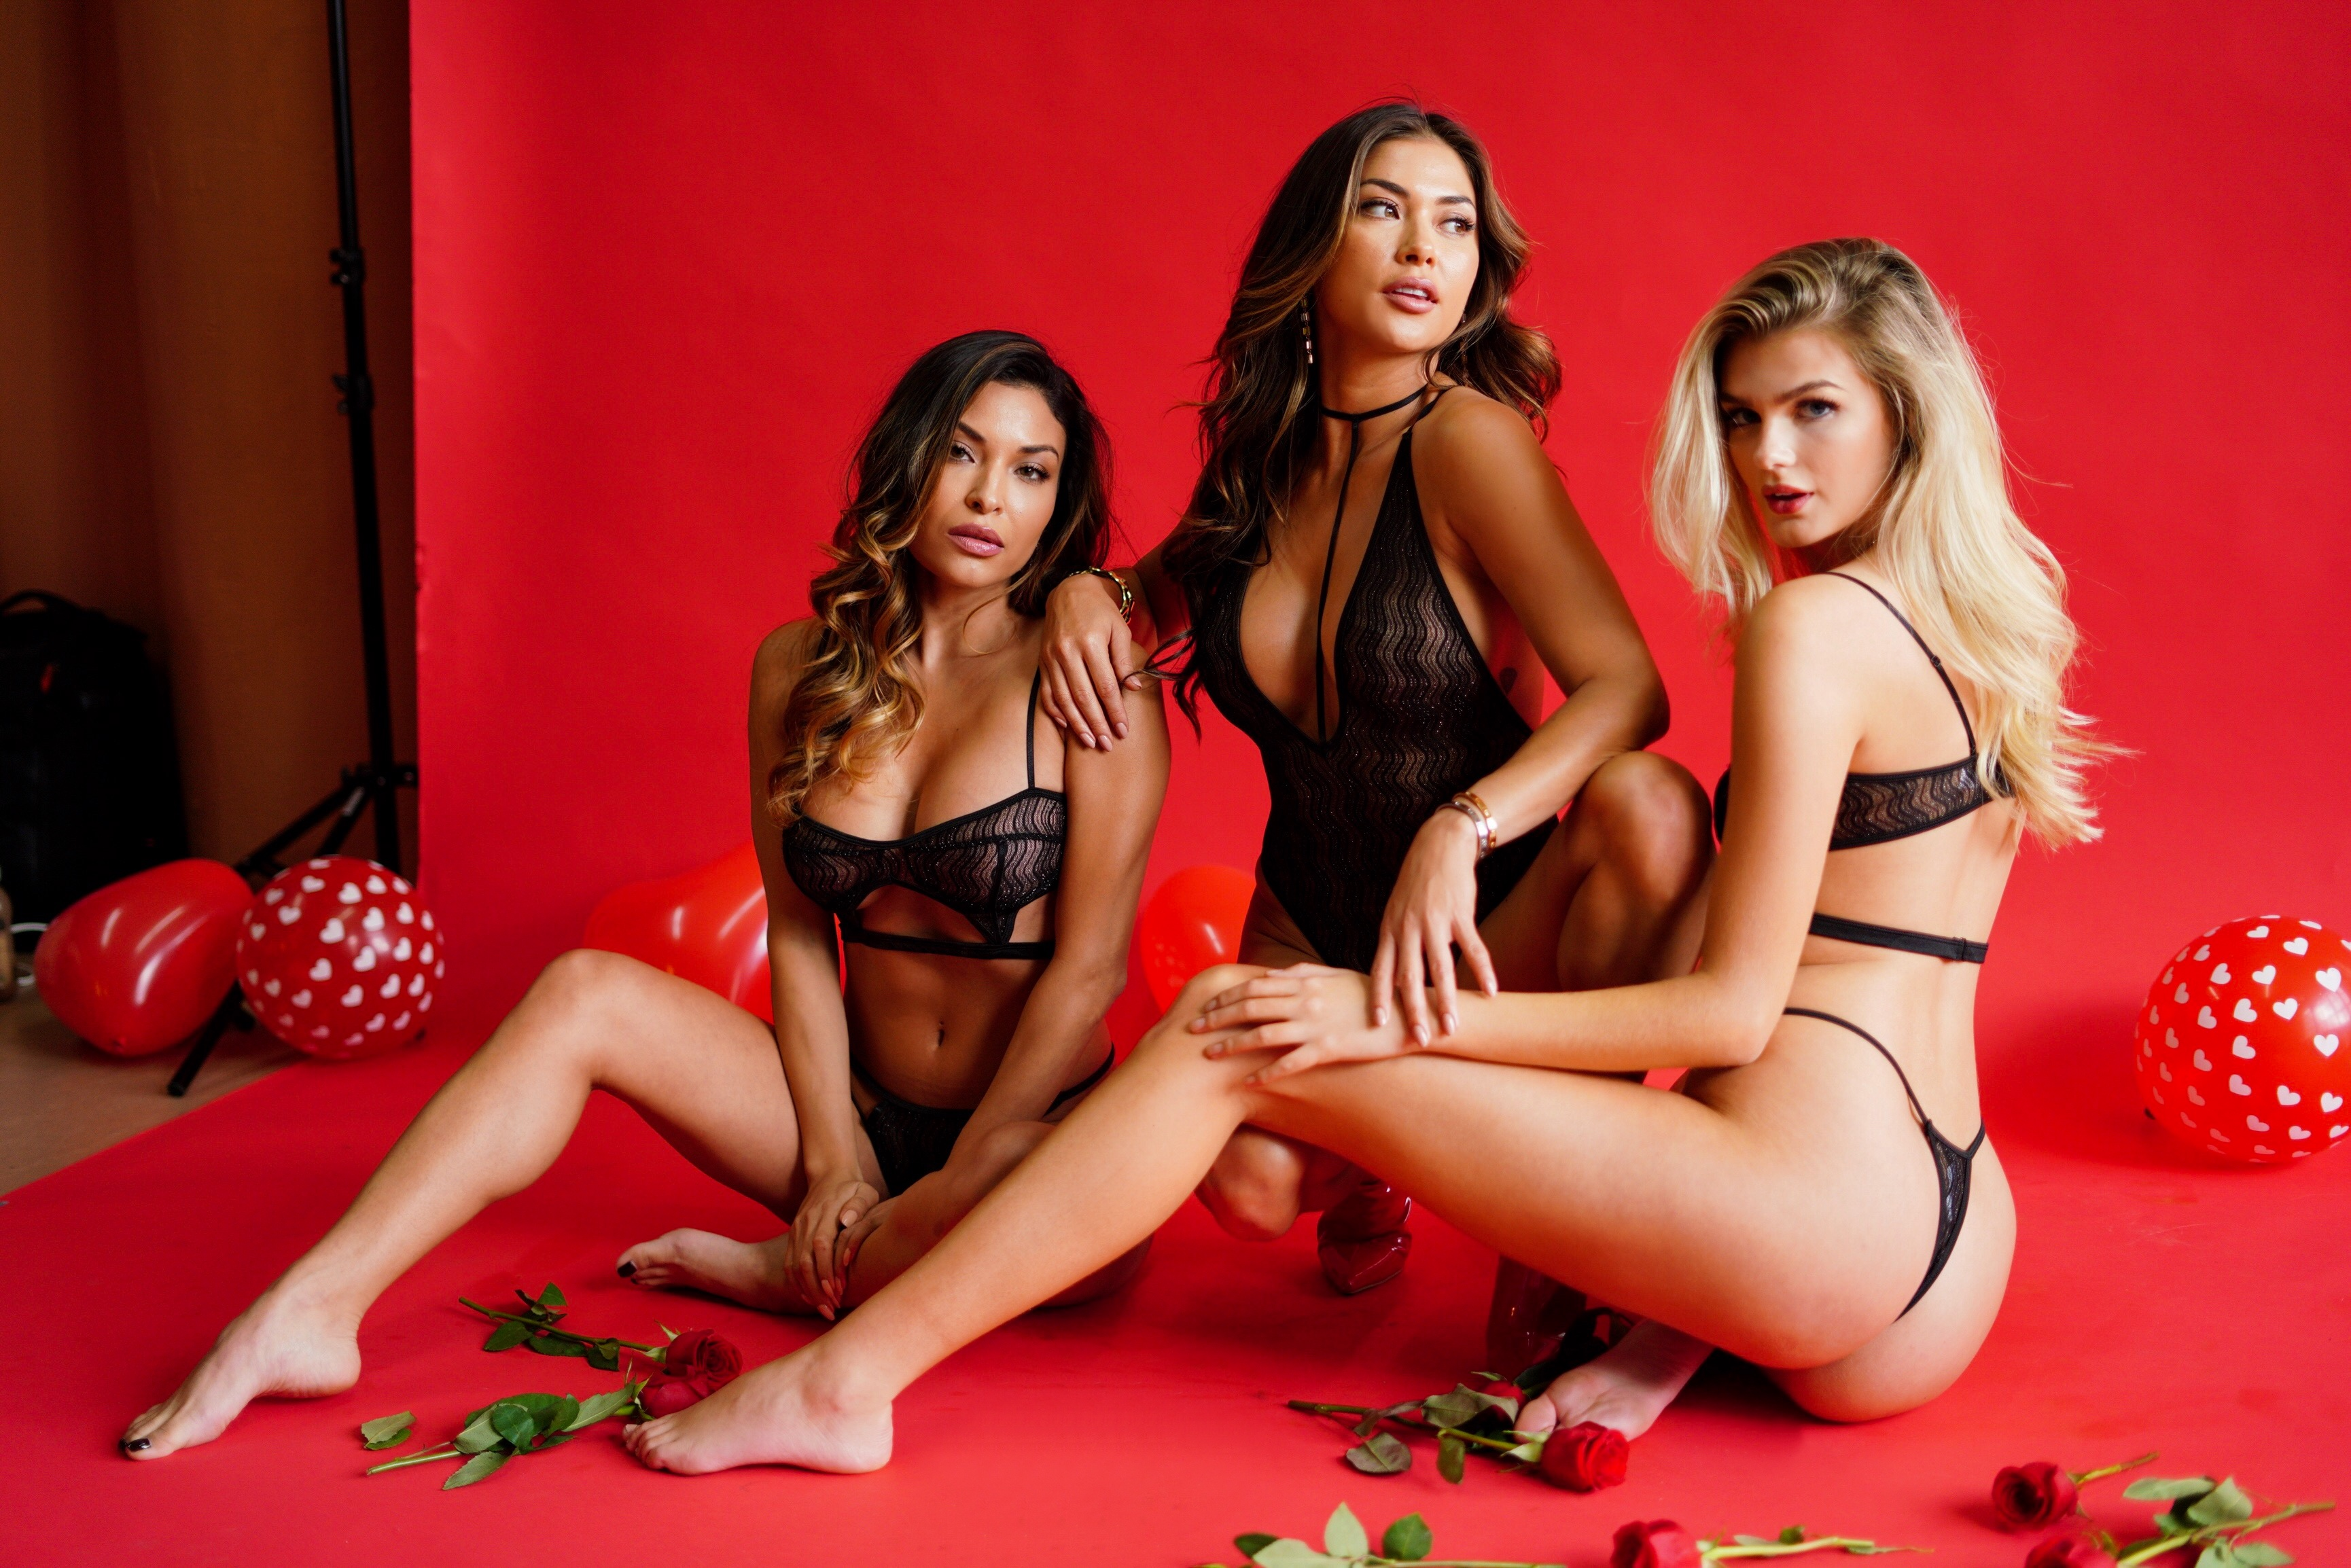 Arianny Celeste With Hot Models Wallpaper - Arianny Celeste With Hot Models Wallpaper